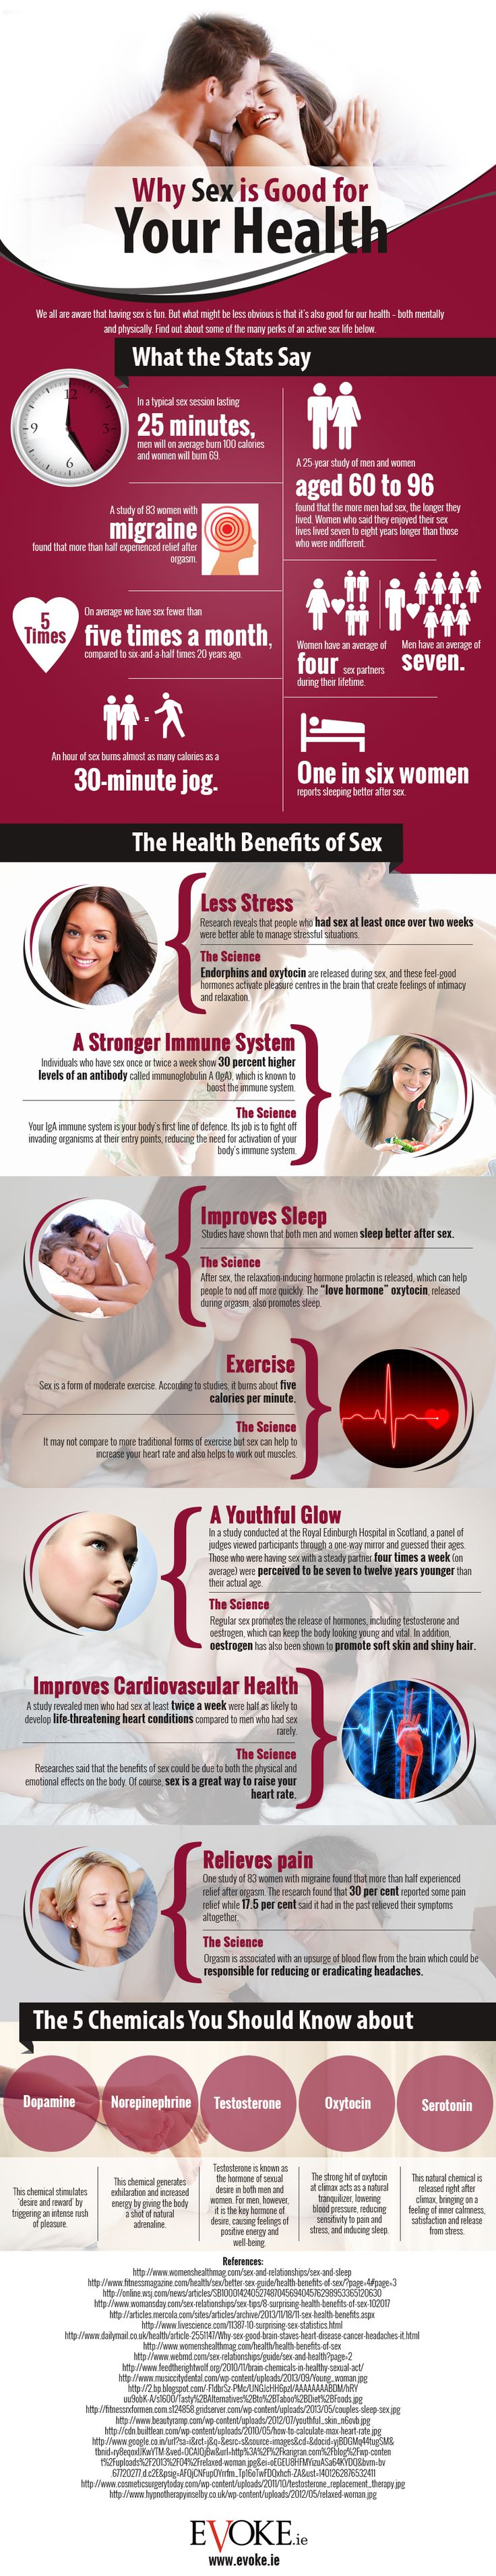 Infographic: Why #Sex is Good for Your Health. Denver Couples Counseling www.ThriveFamilyServices.com